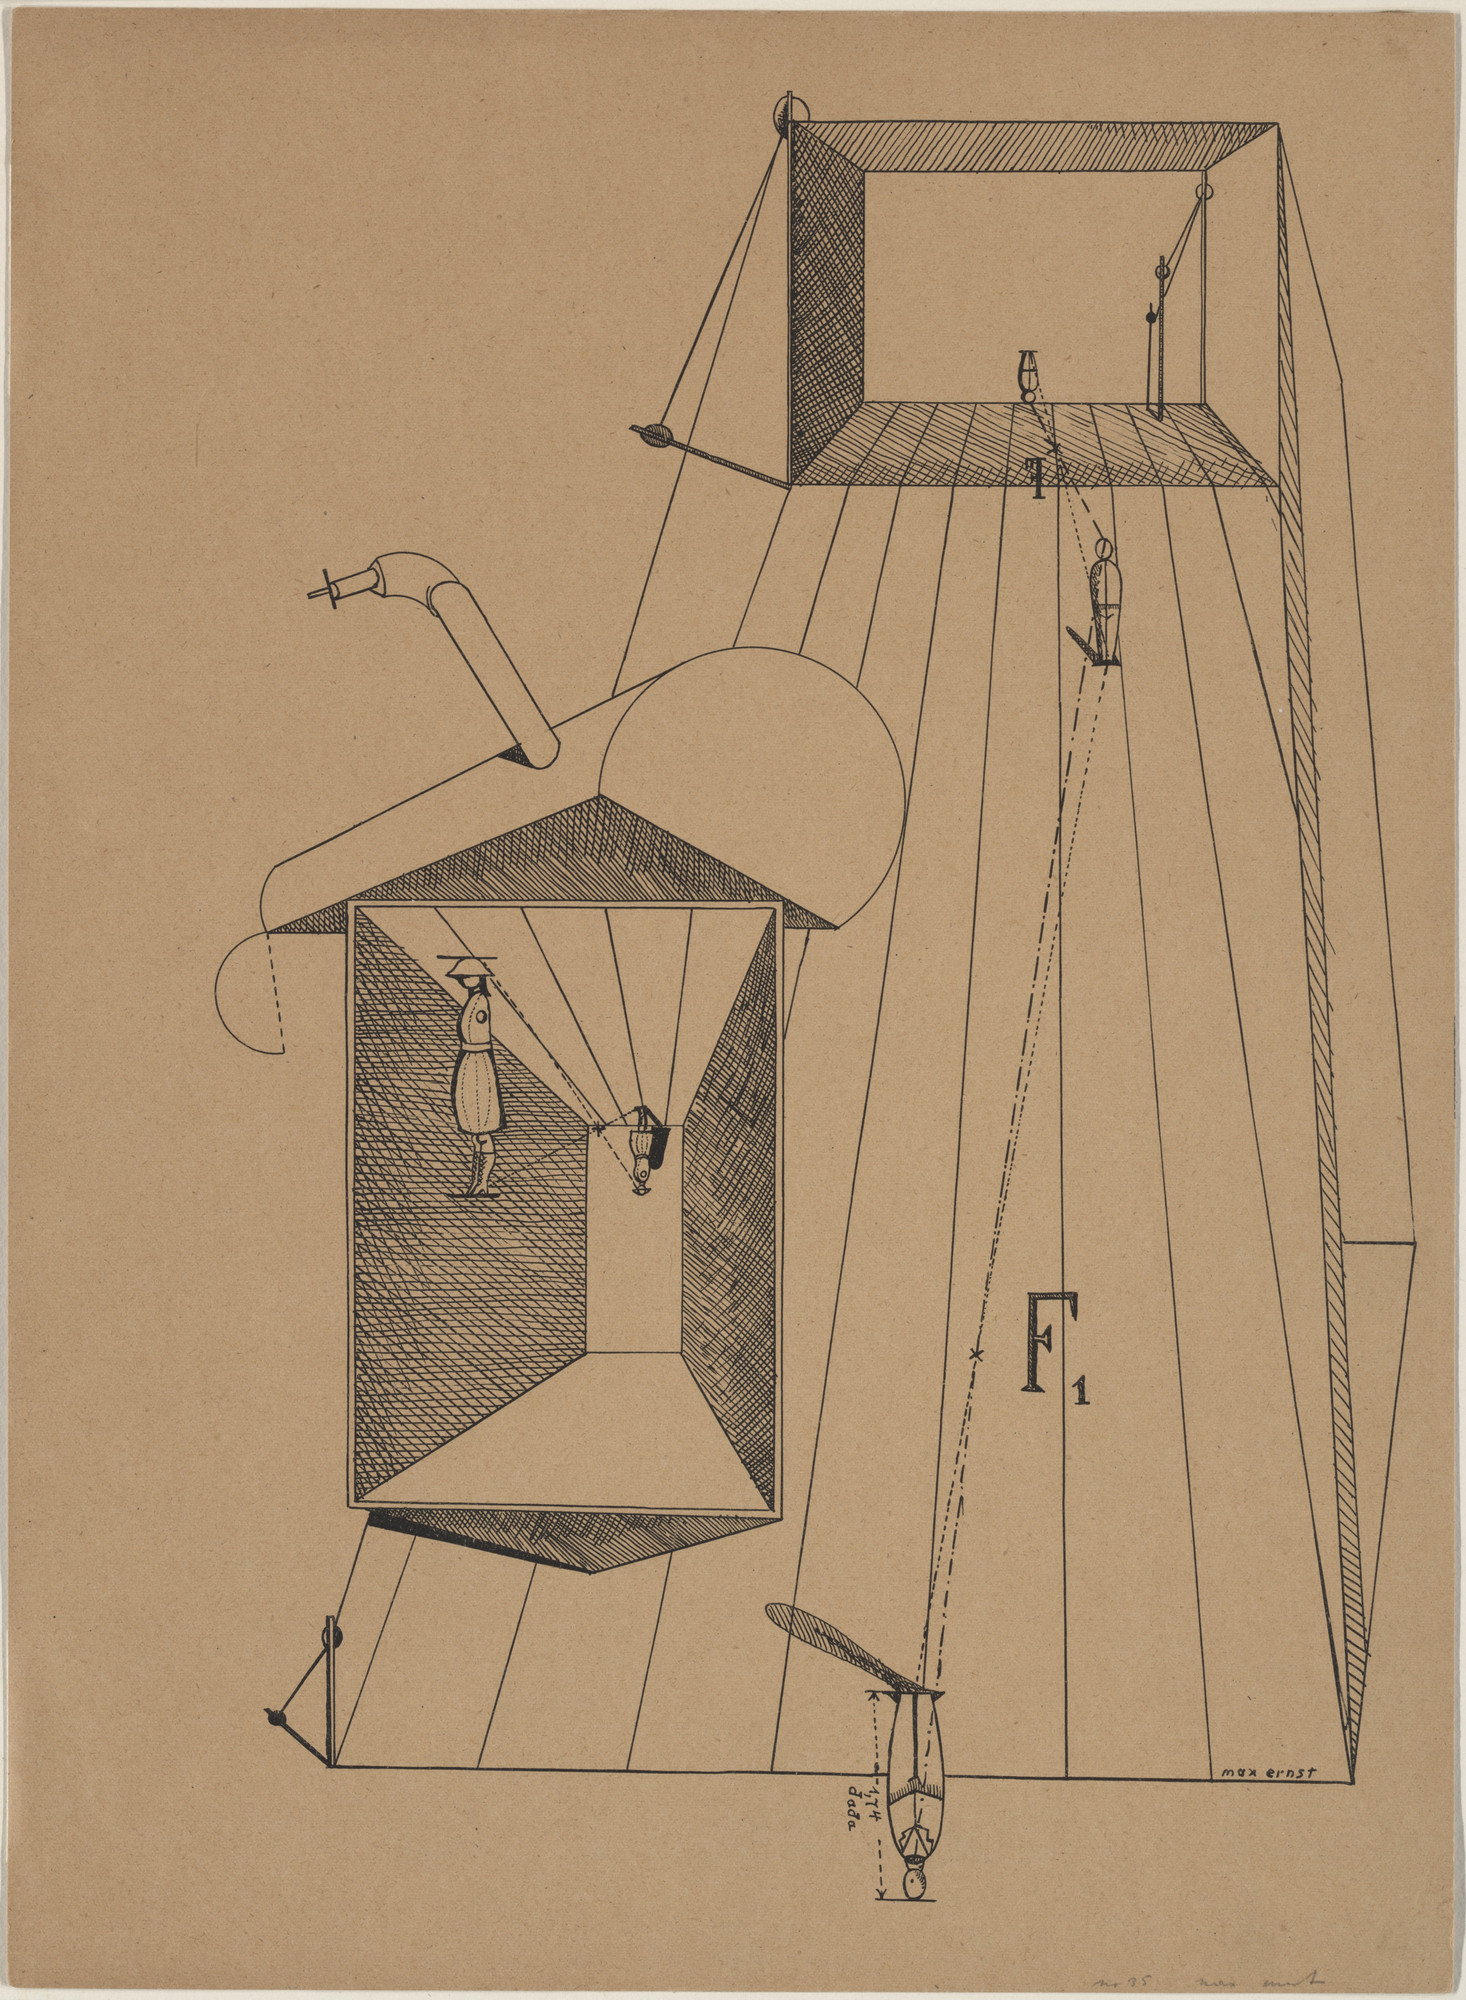 Max Ernst. Plate VI from Let There Be Fashion, Down With Art (Fiat modes pereat ars). 1920